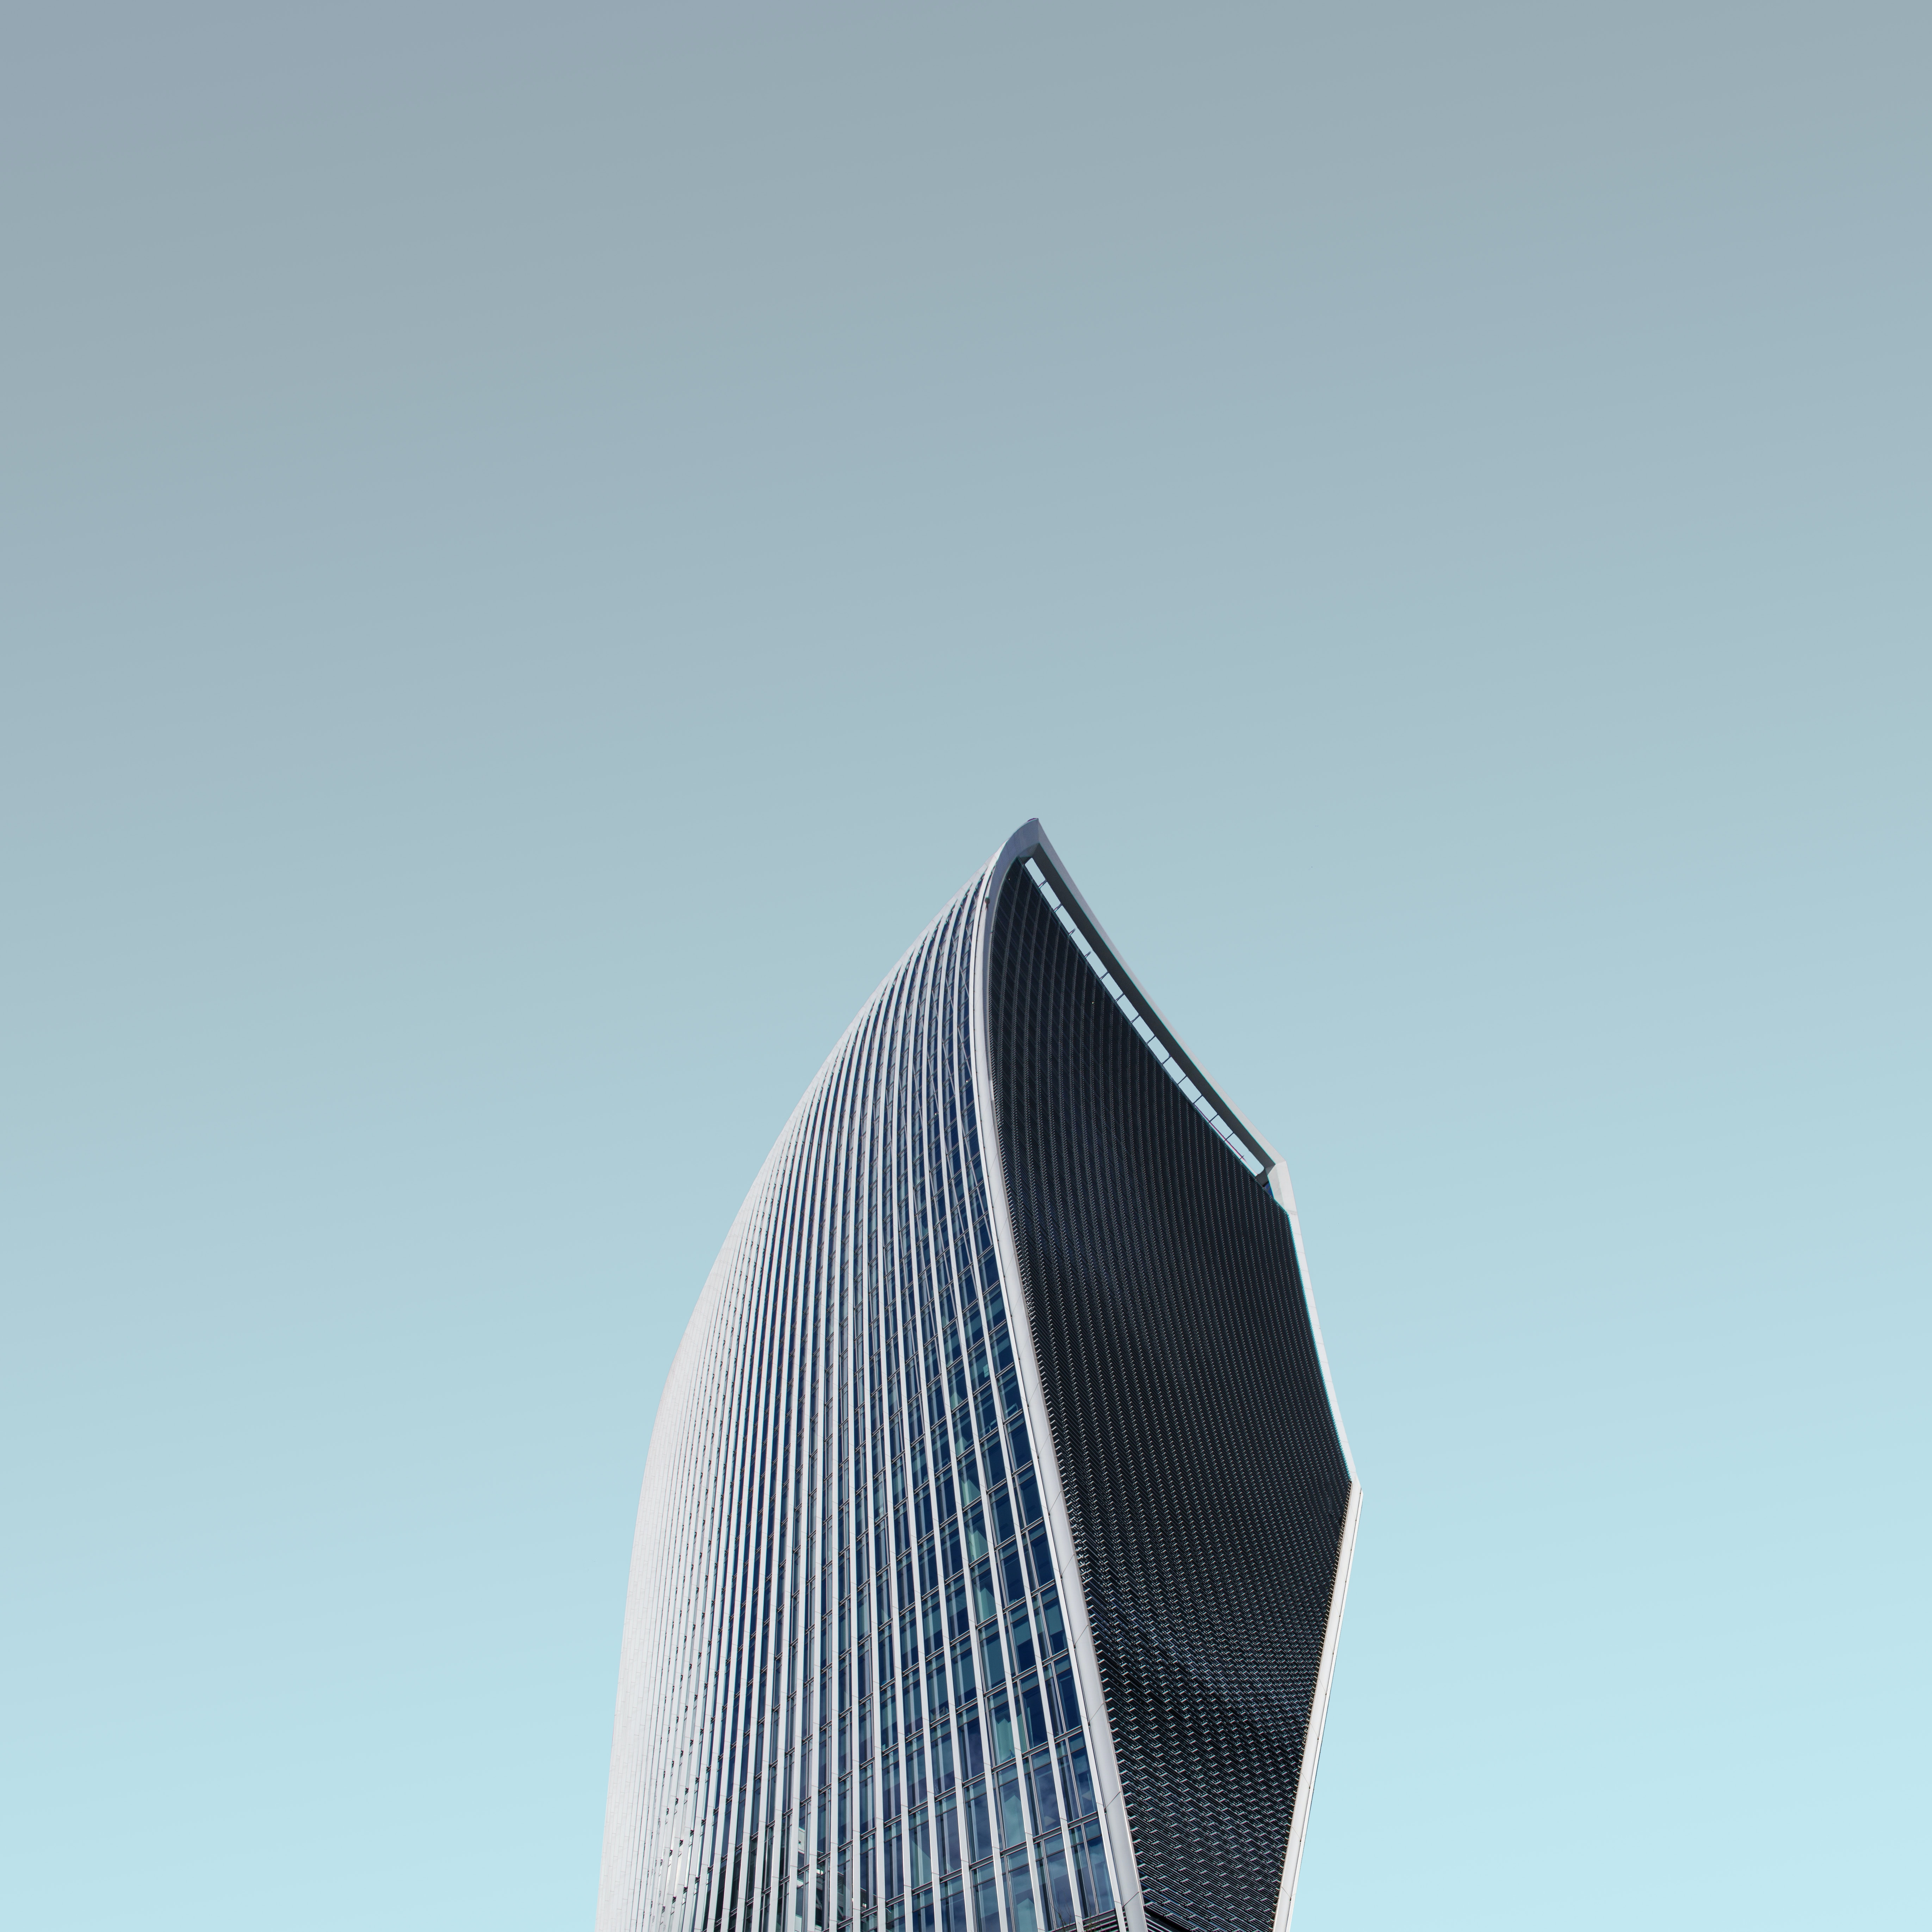 worm's eye view photography of glass tower